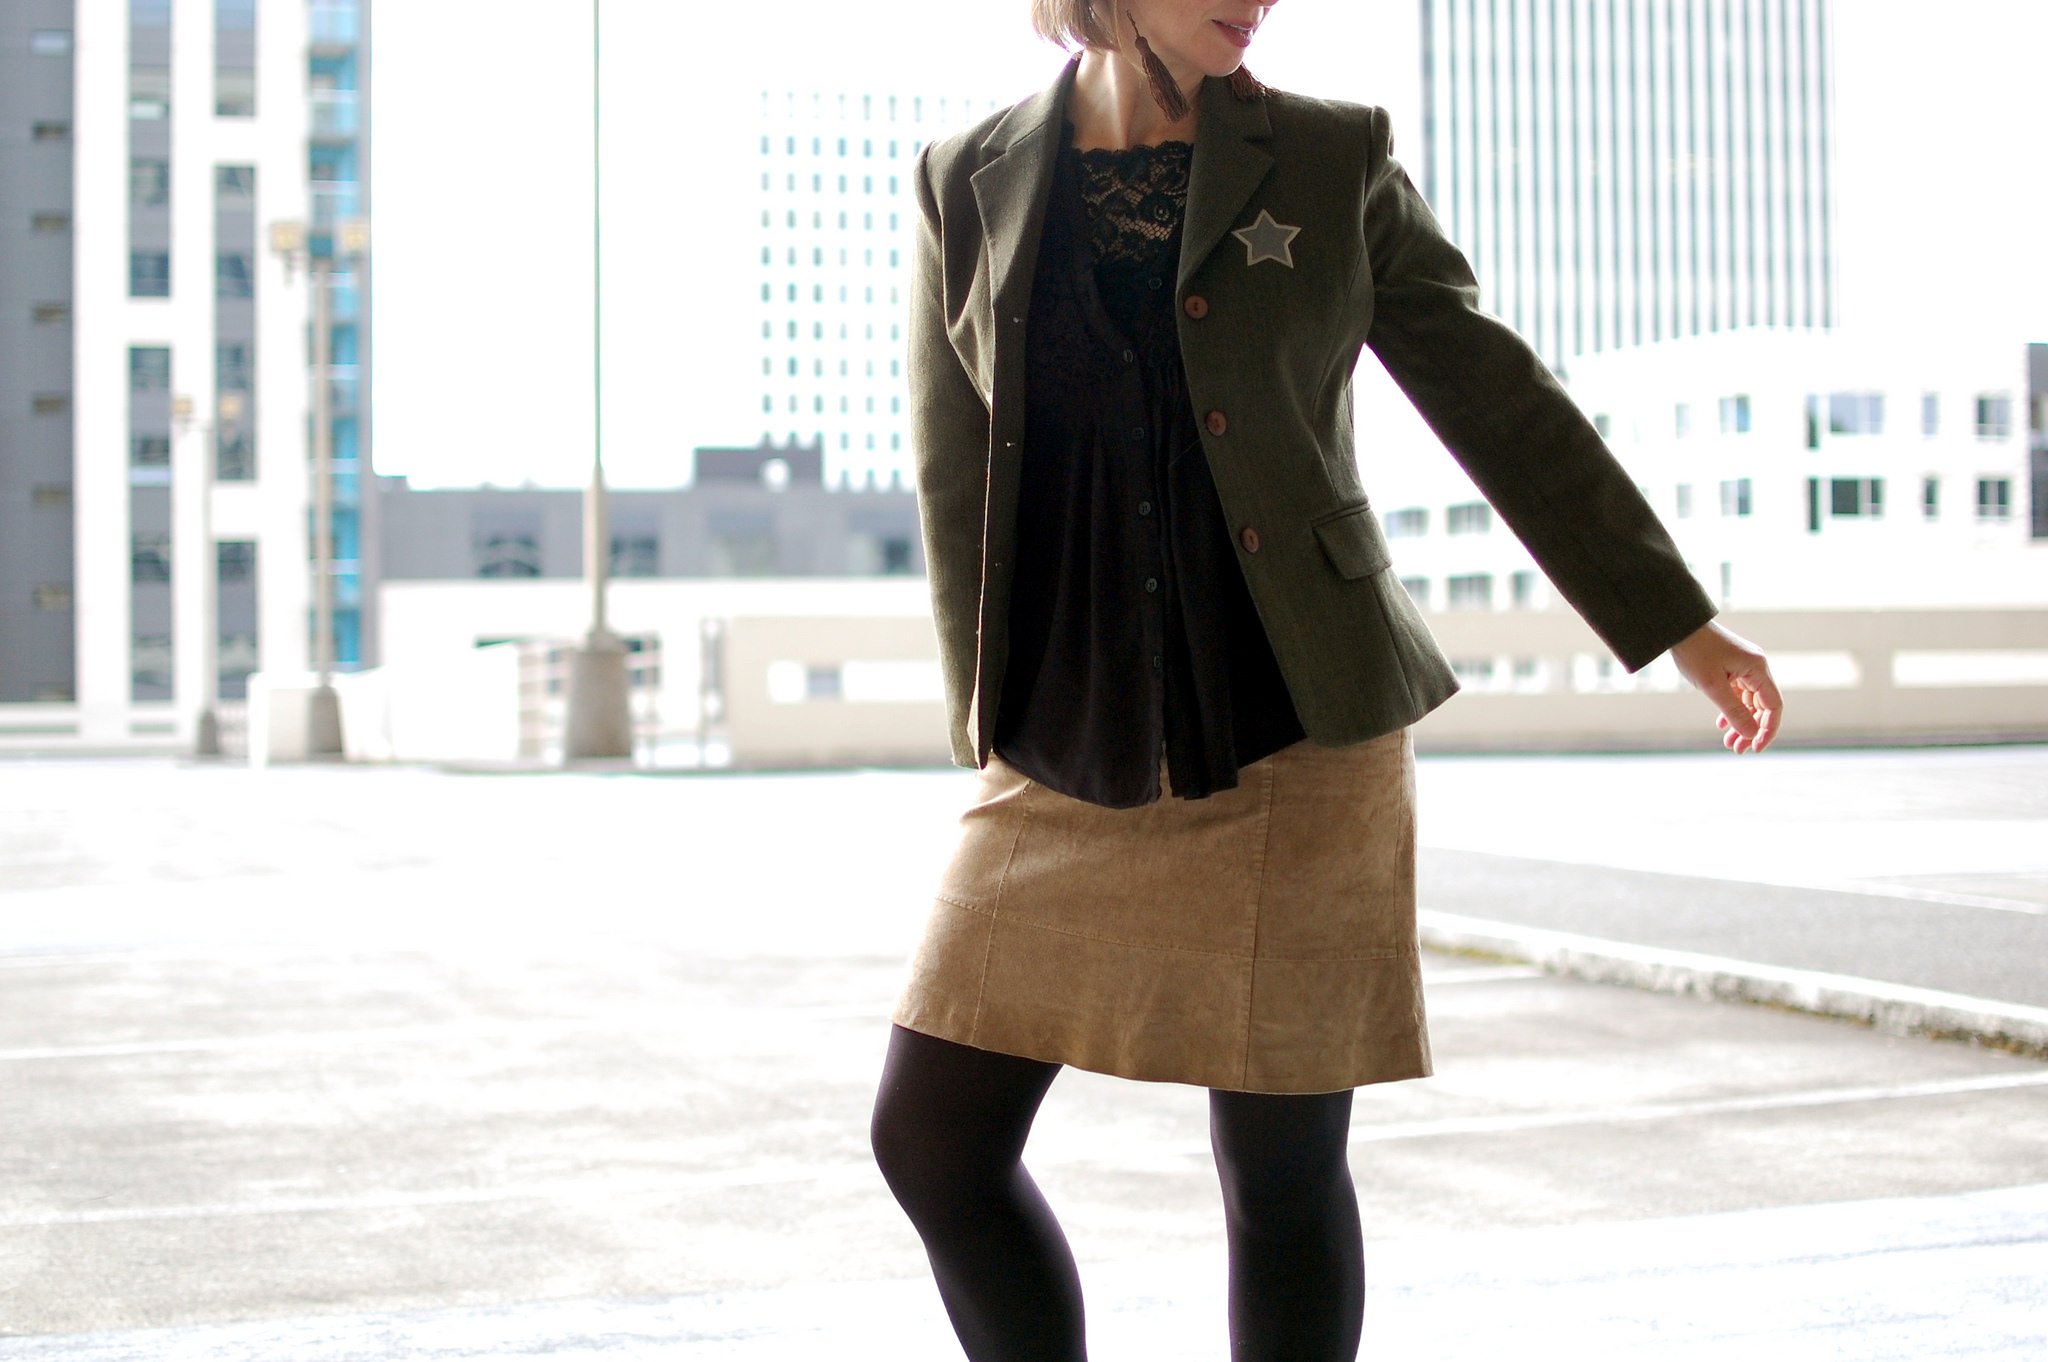 daily outfit blog ootd whatiwore2day military blazer